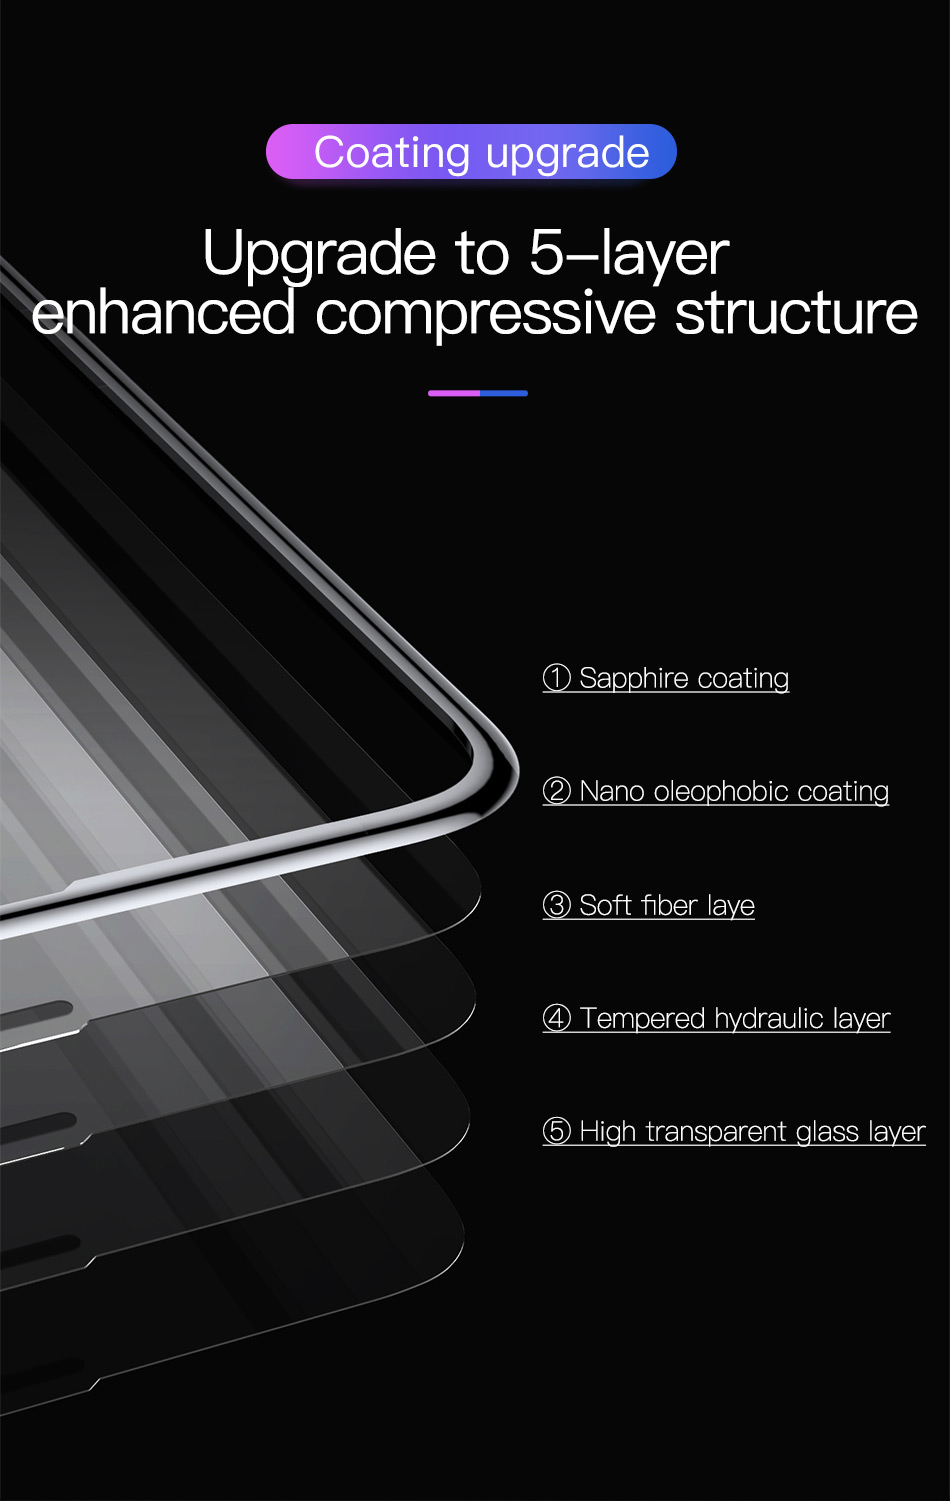 Baseus 0.3mm Full Coverage Tempered Glass For iPhone Xs Xs Max XR 2018 Screen Protector Thin Protective Glass For iPhone X Xs XR H6af126856cf14a69be85eee77502ce01J